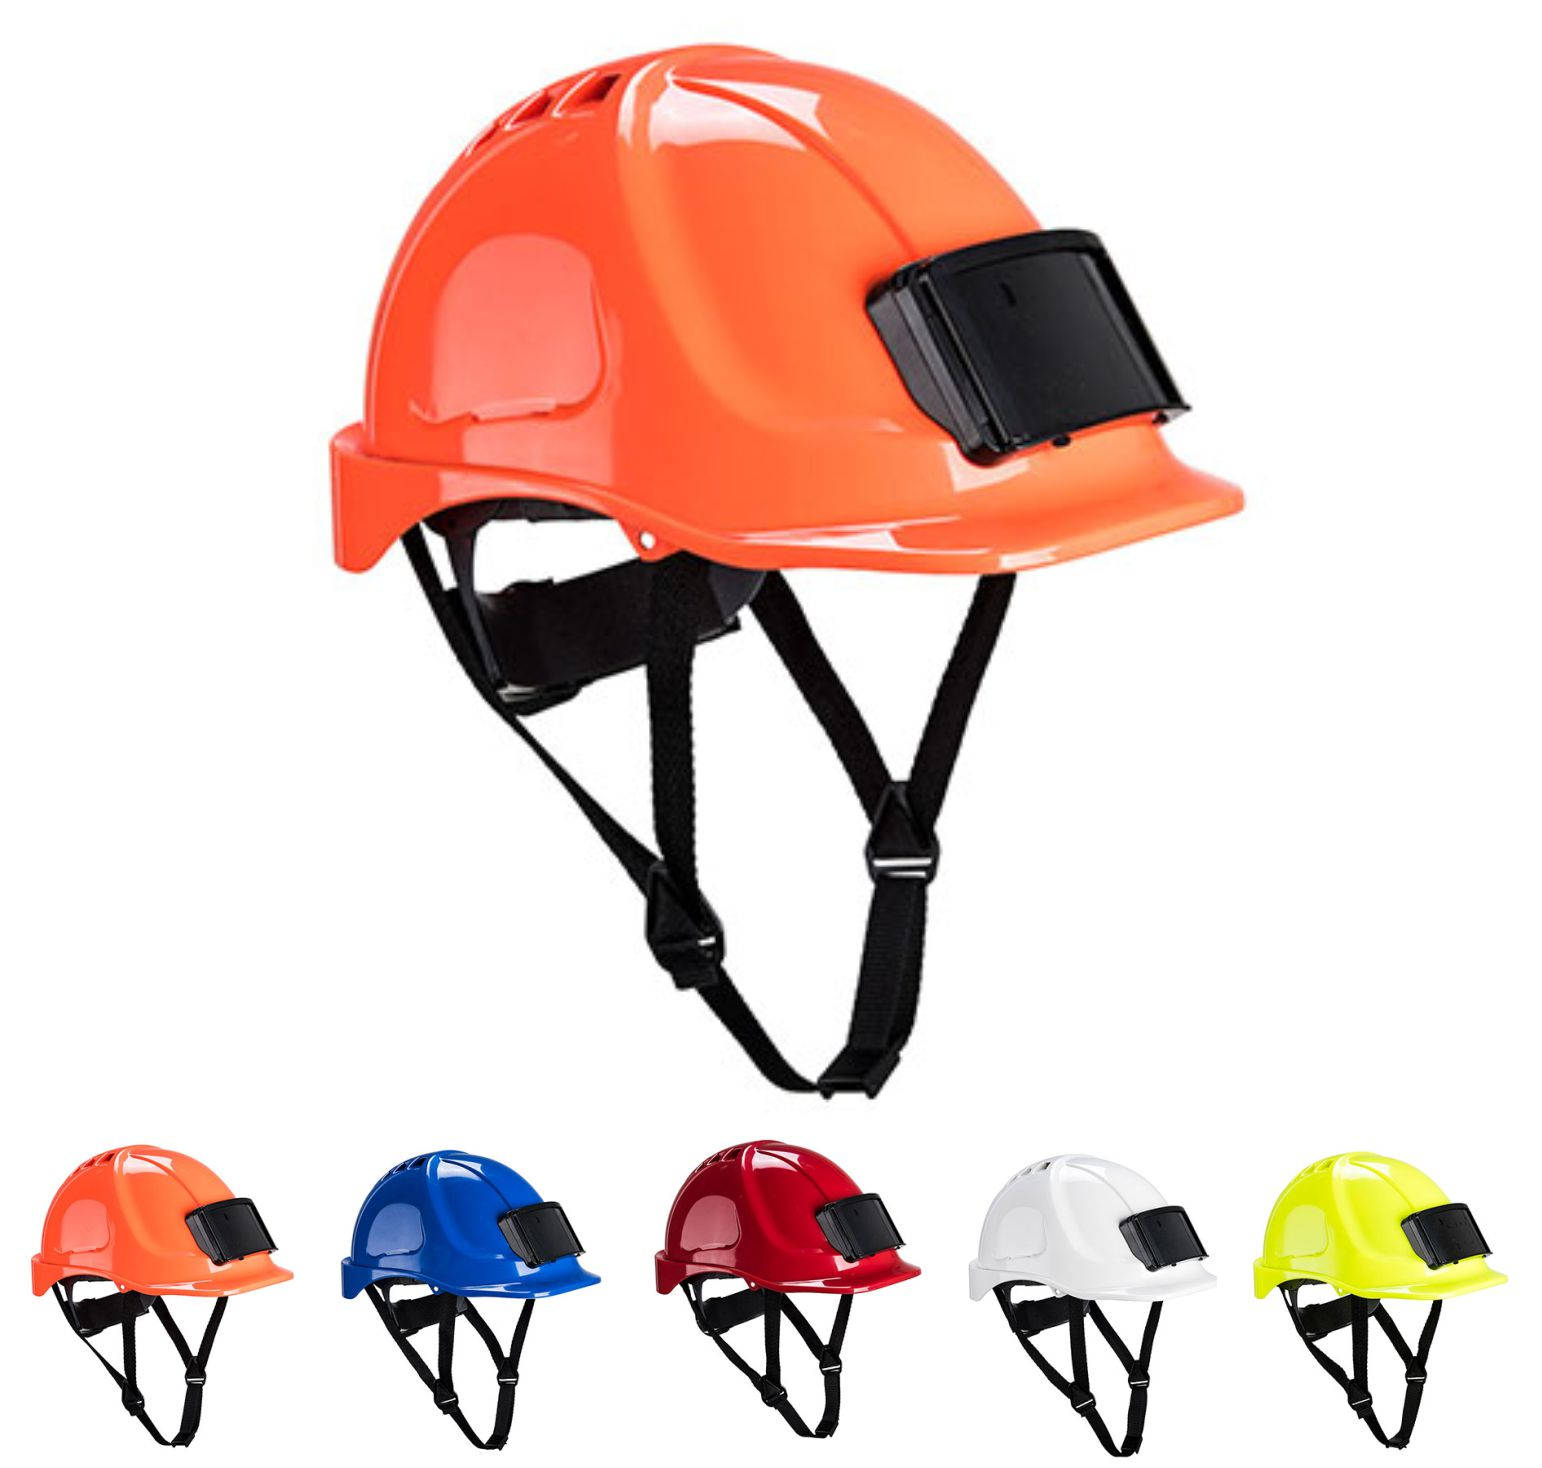 PB55 Endurance Badge Holder Helmet